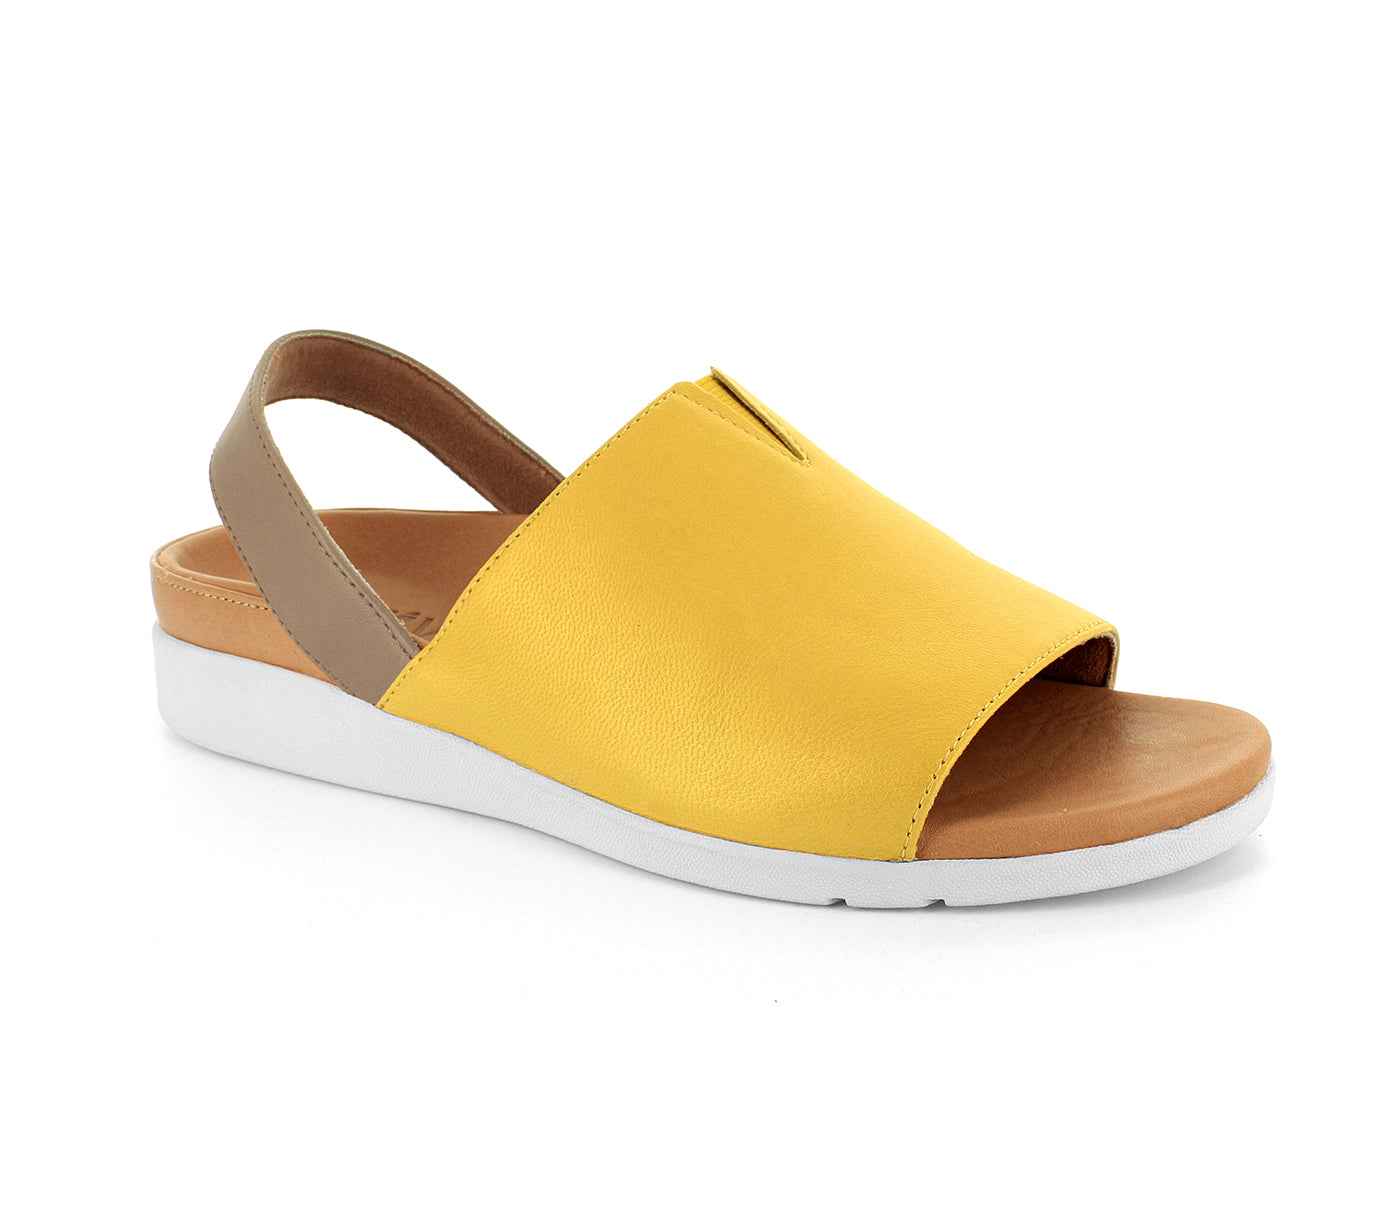 STRIVE MARA Back Strap Sandal with Arch Support - Honey Gold